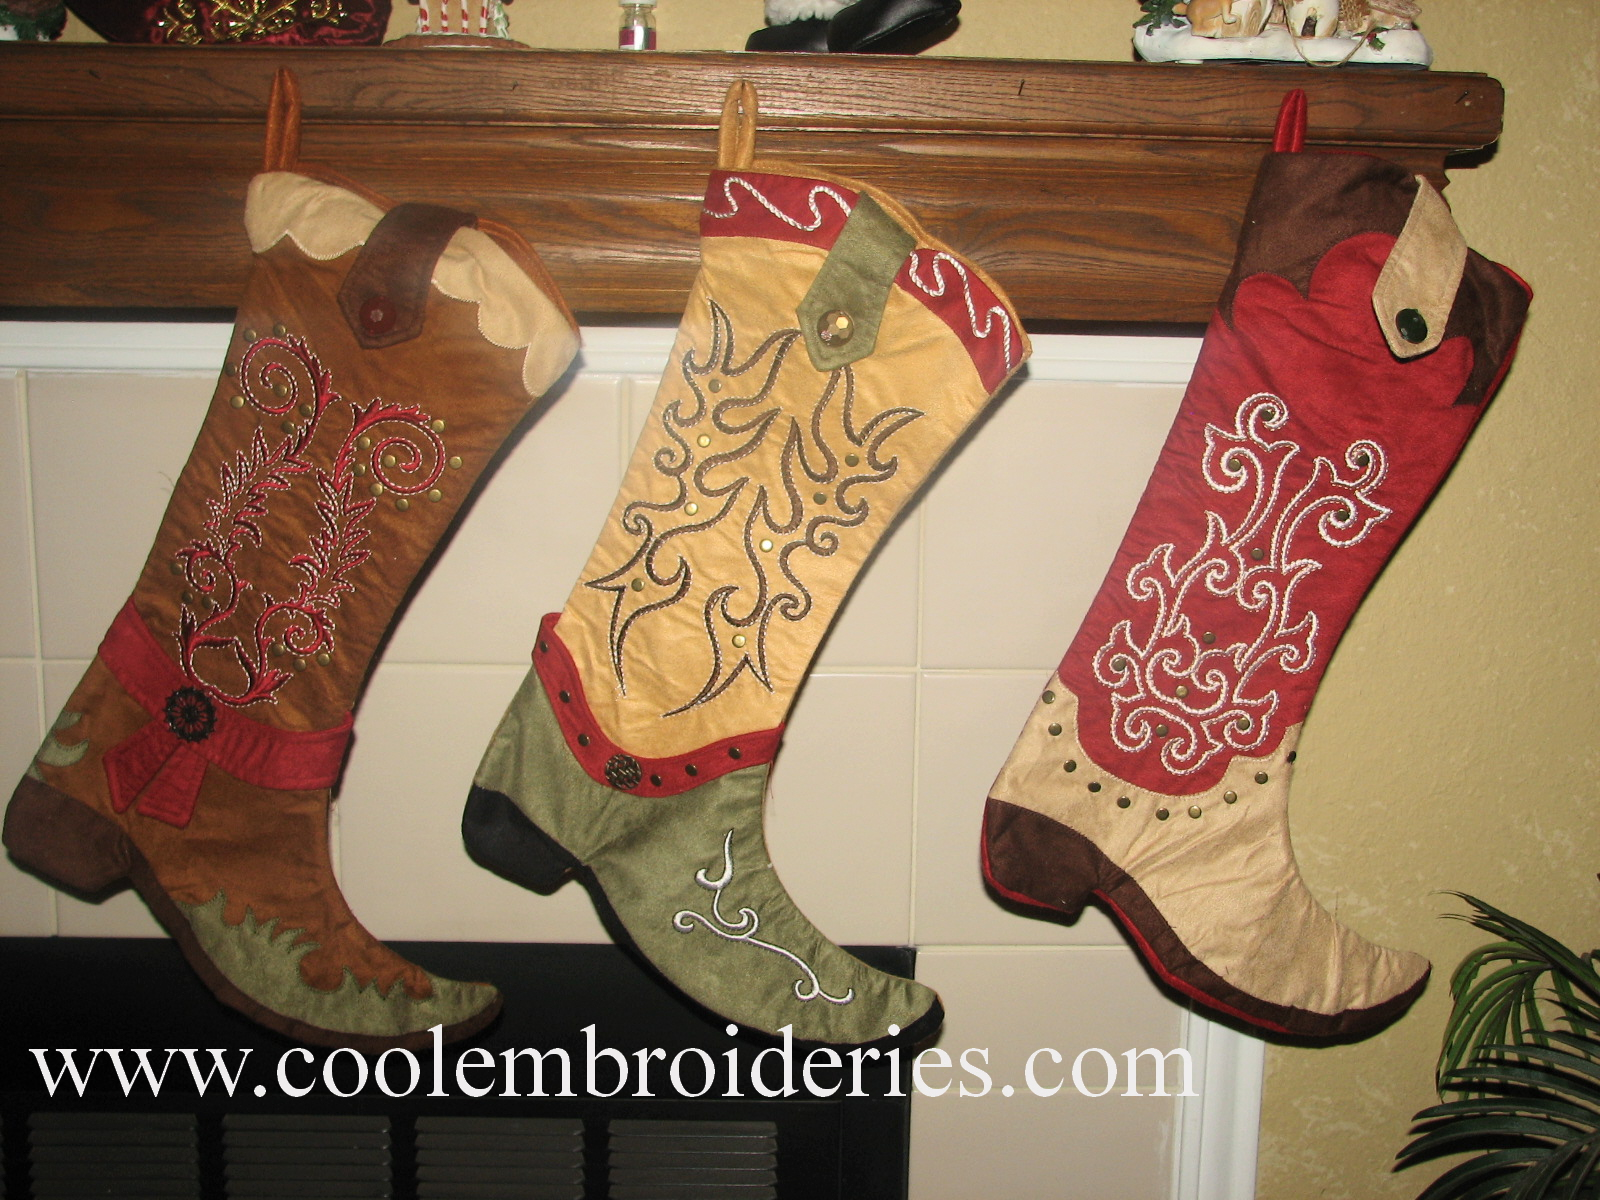 Western Christmas Stocking Patterns http://coolembroideries.com/cowboy-cowgirl-embroidered-christmas-stockings.html